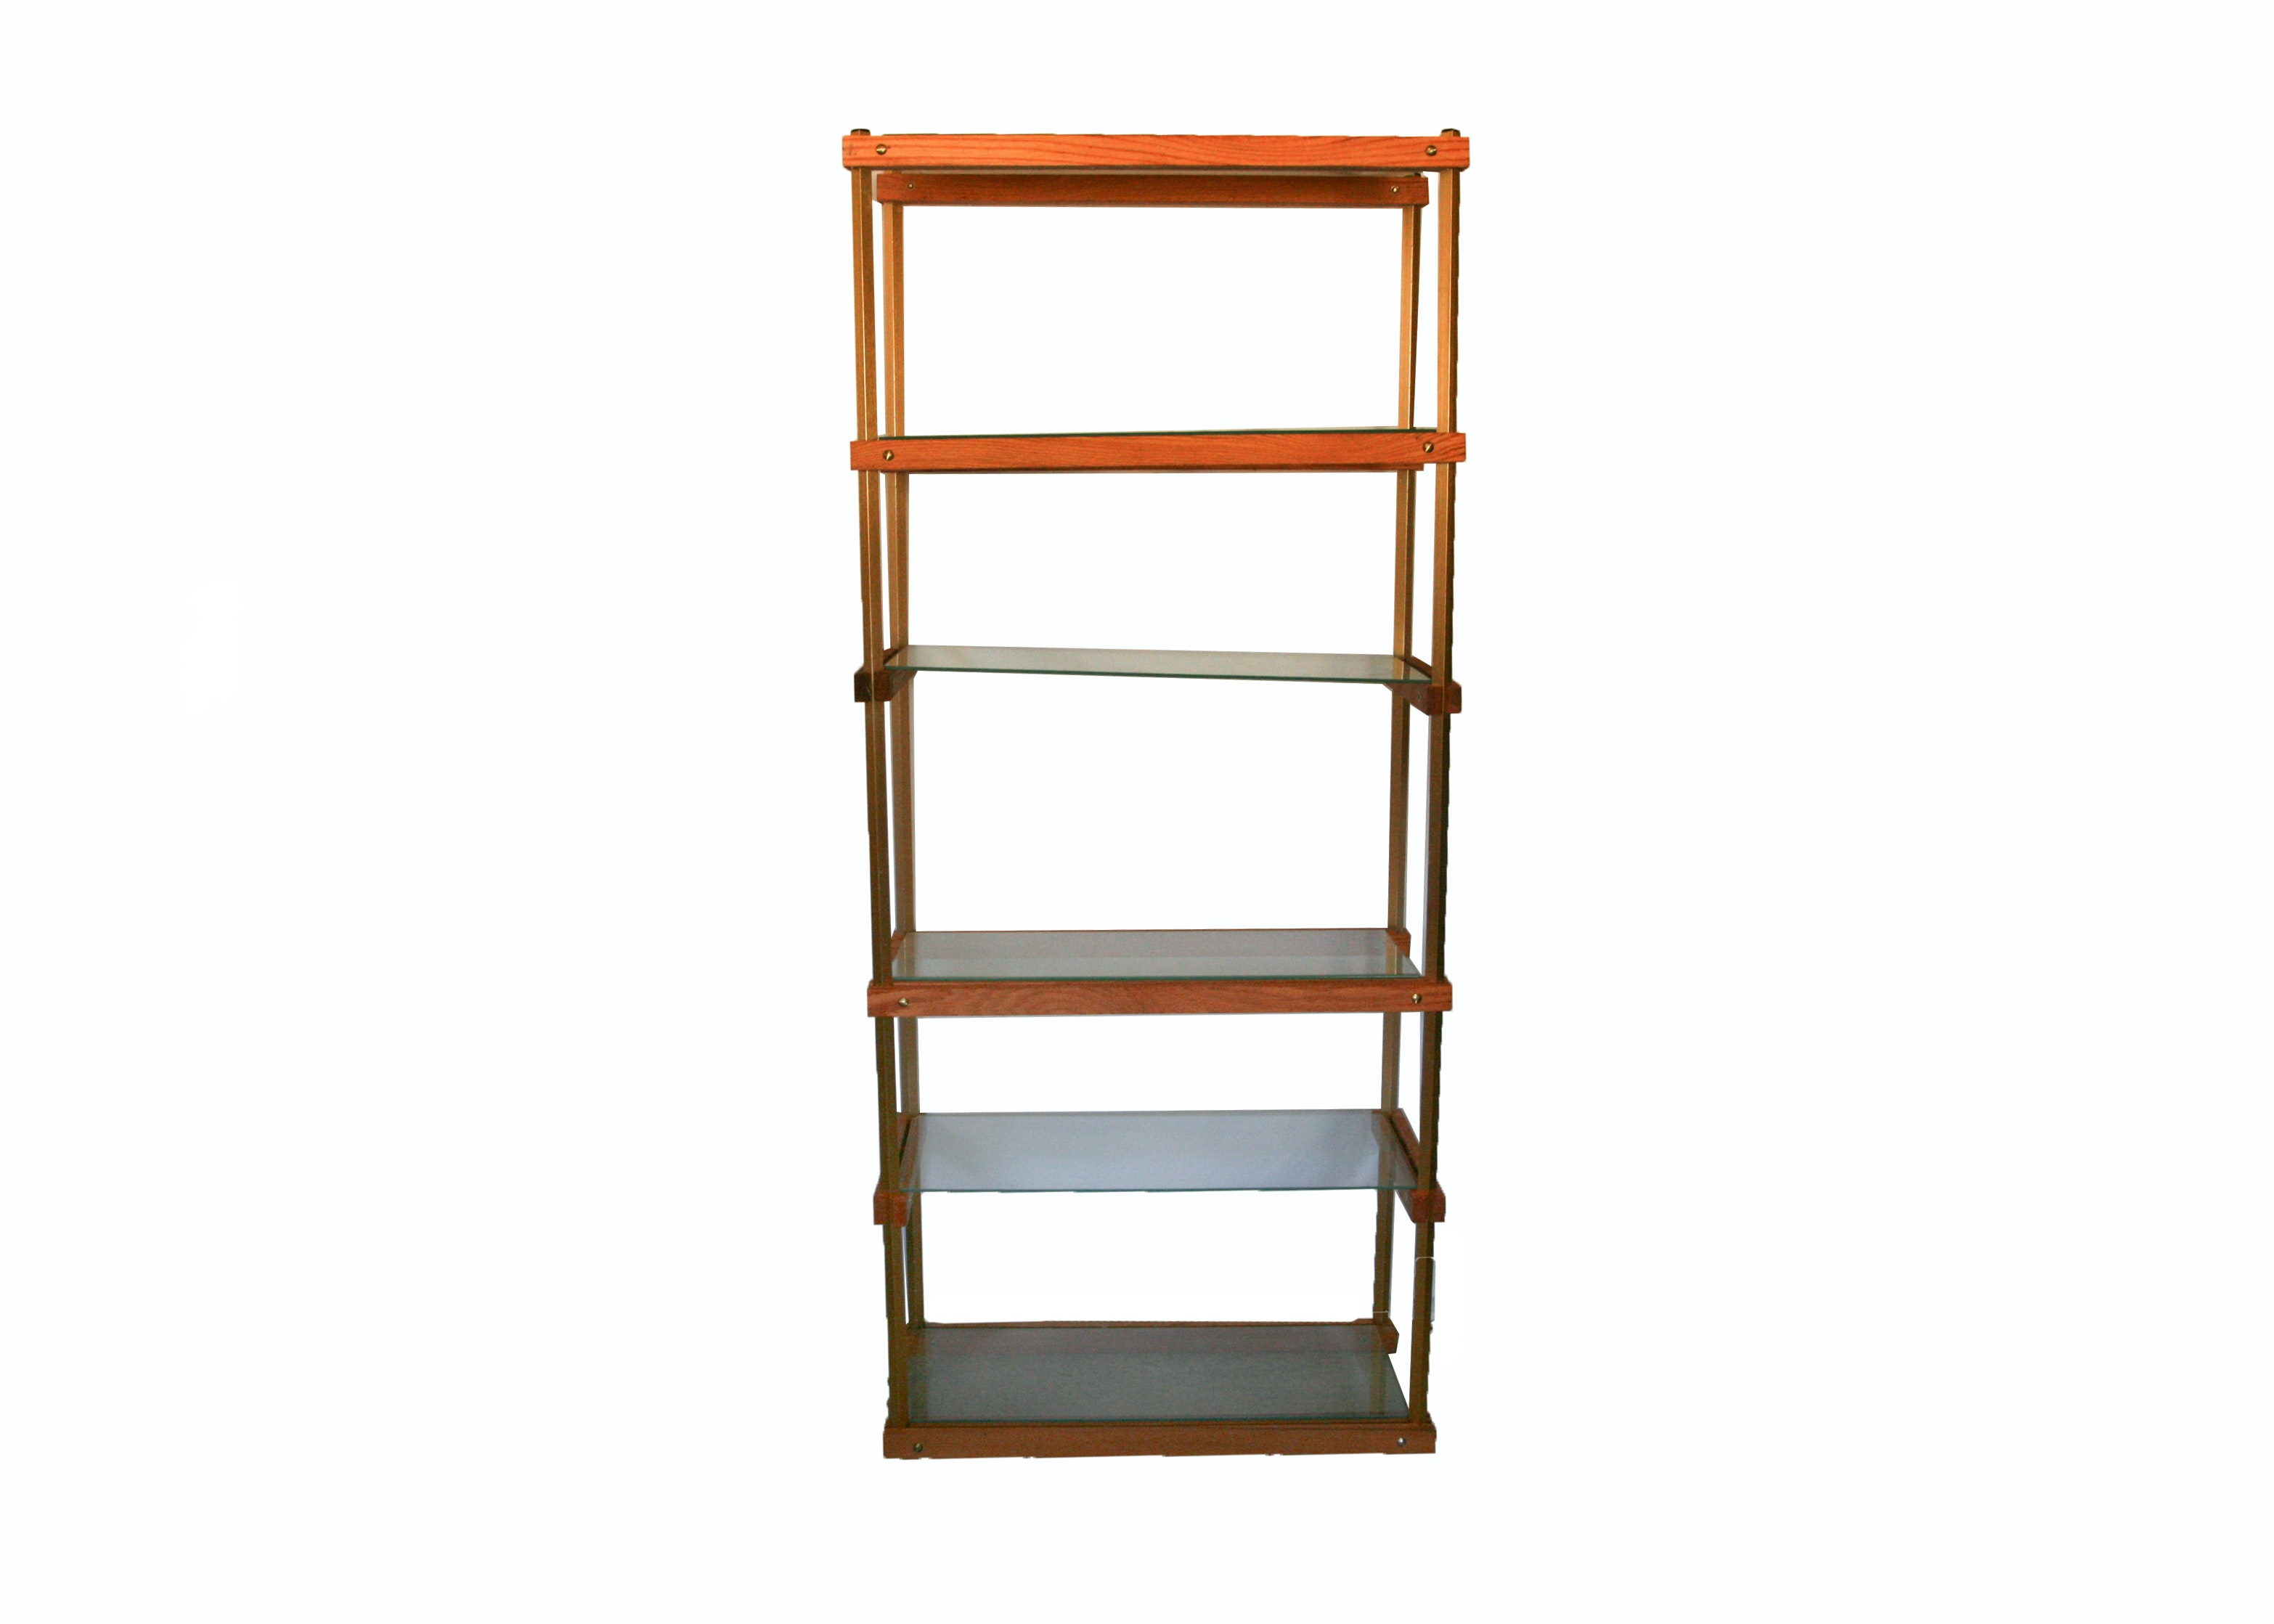 PPG Wood and Glass Shelving Unit